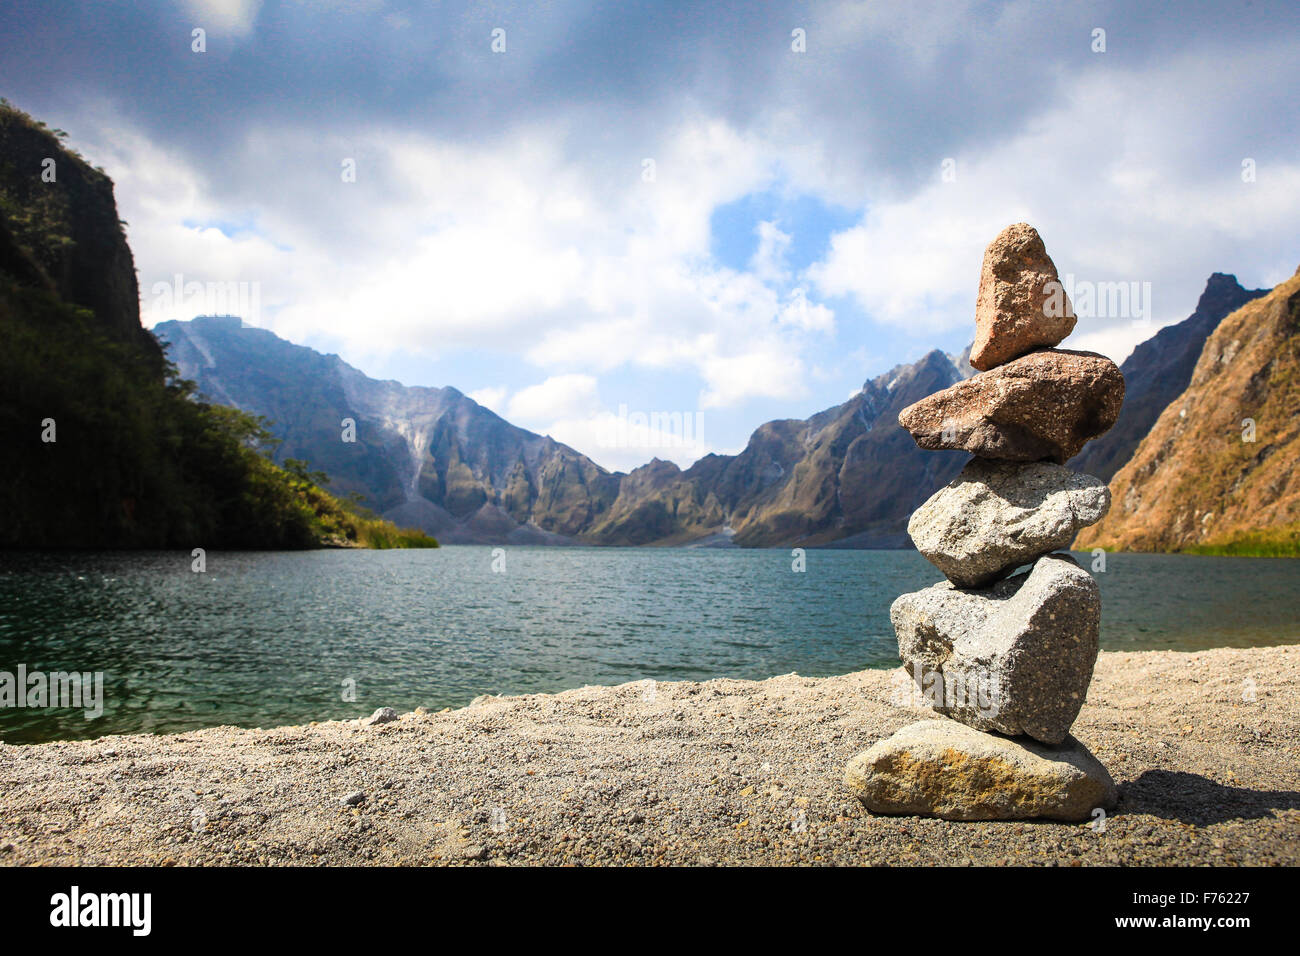 Pile of stones beside on the lake. Concept of balance and harmony. - Stock Image